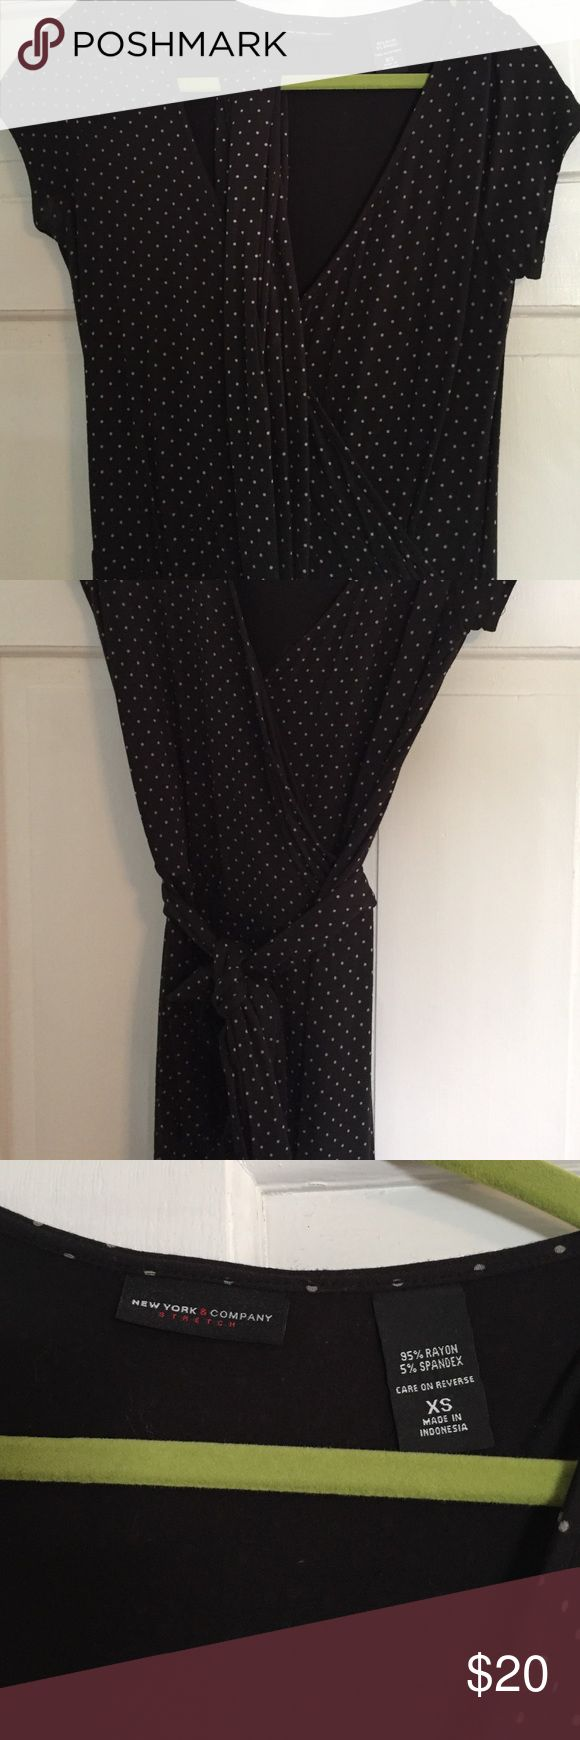 """Black dress Black with small polka dot dress. Perfect for work or a night out. Dress is an X small. However, I am 5""""8 and this fit me at the knees. New York & Company Dresses Midi"""